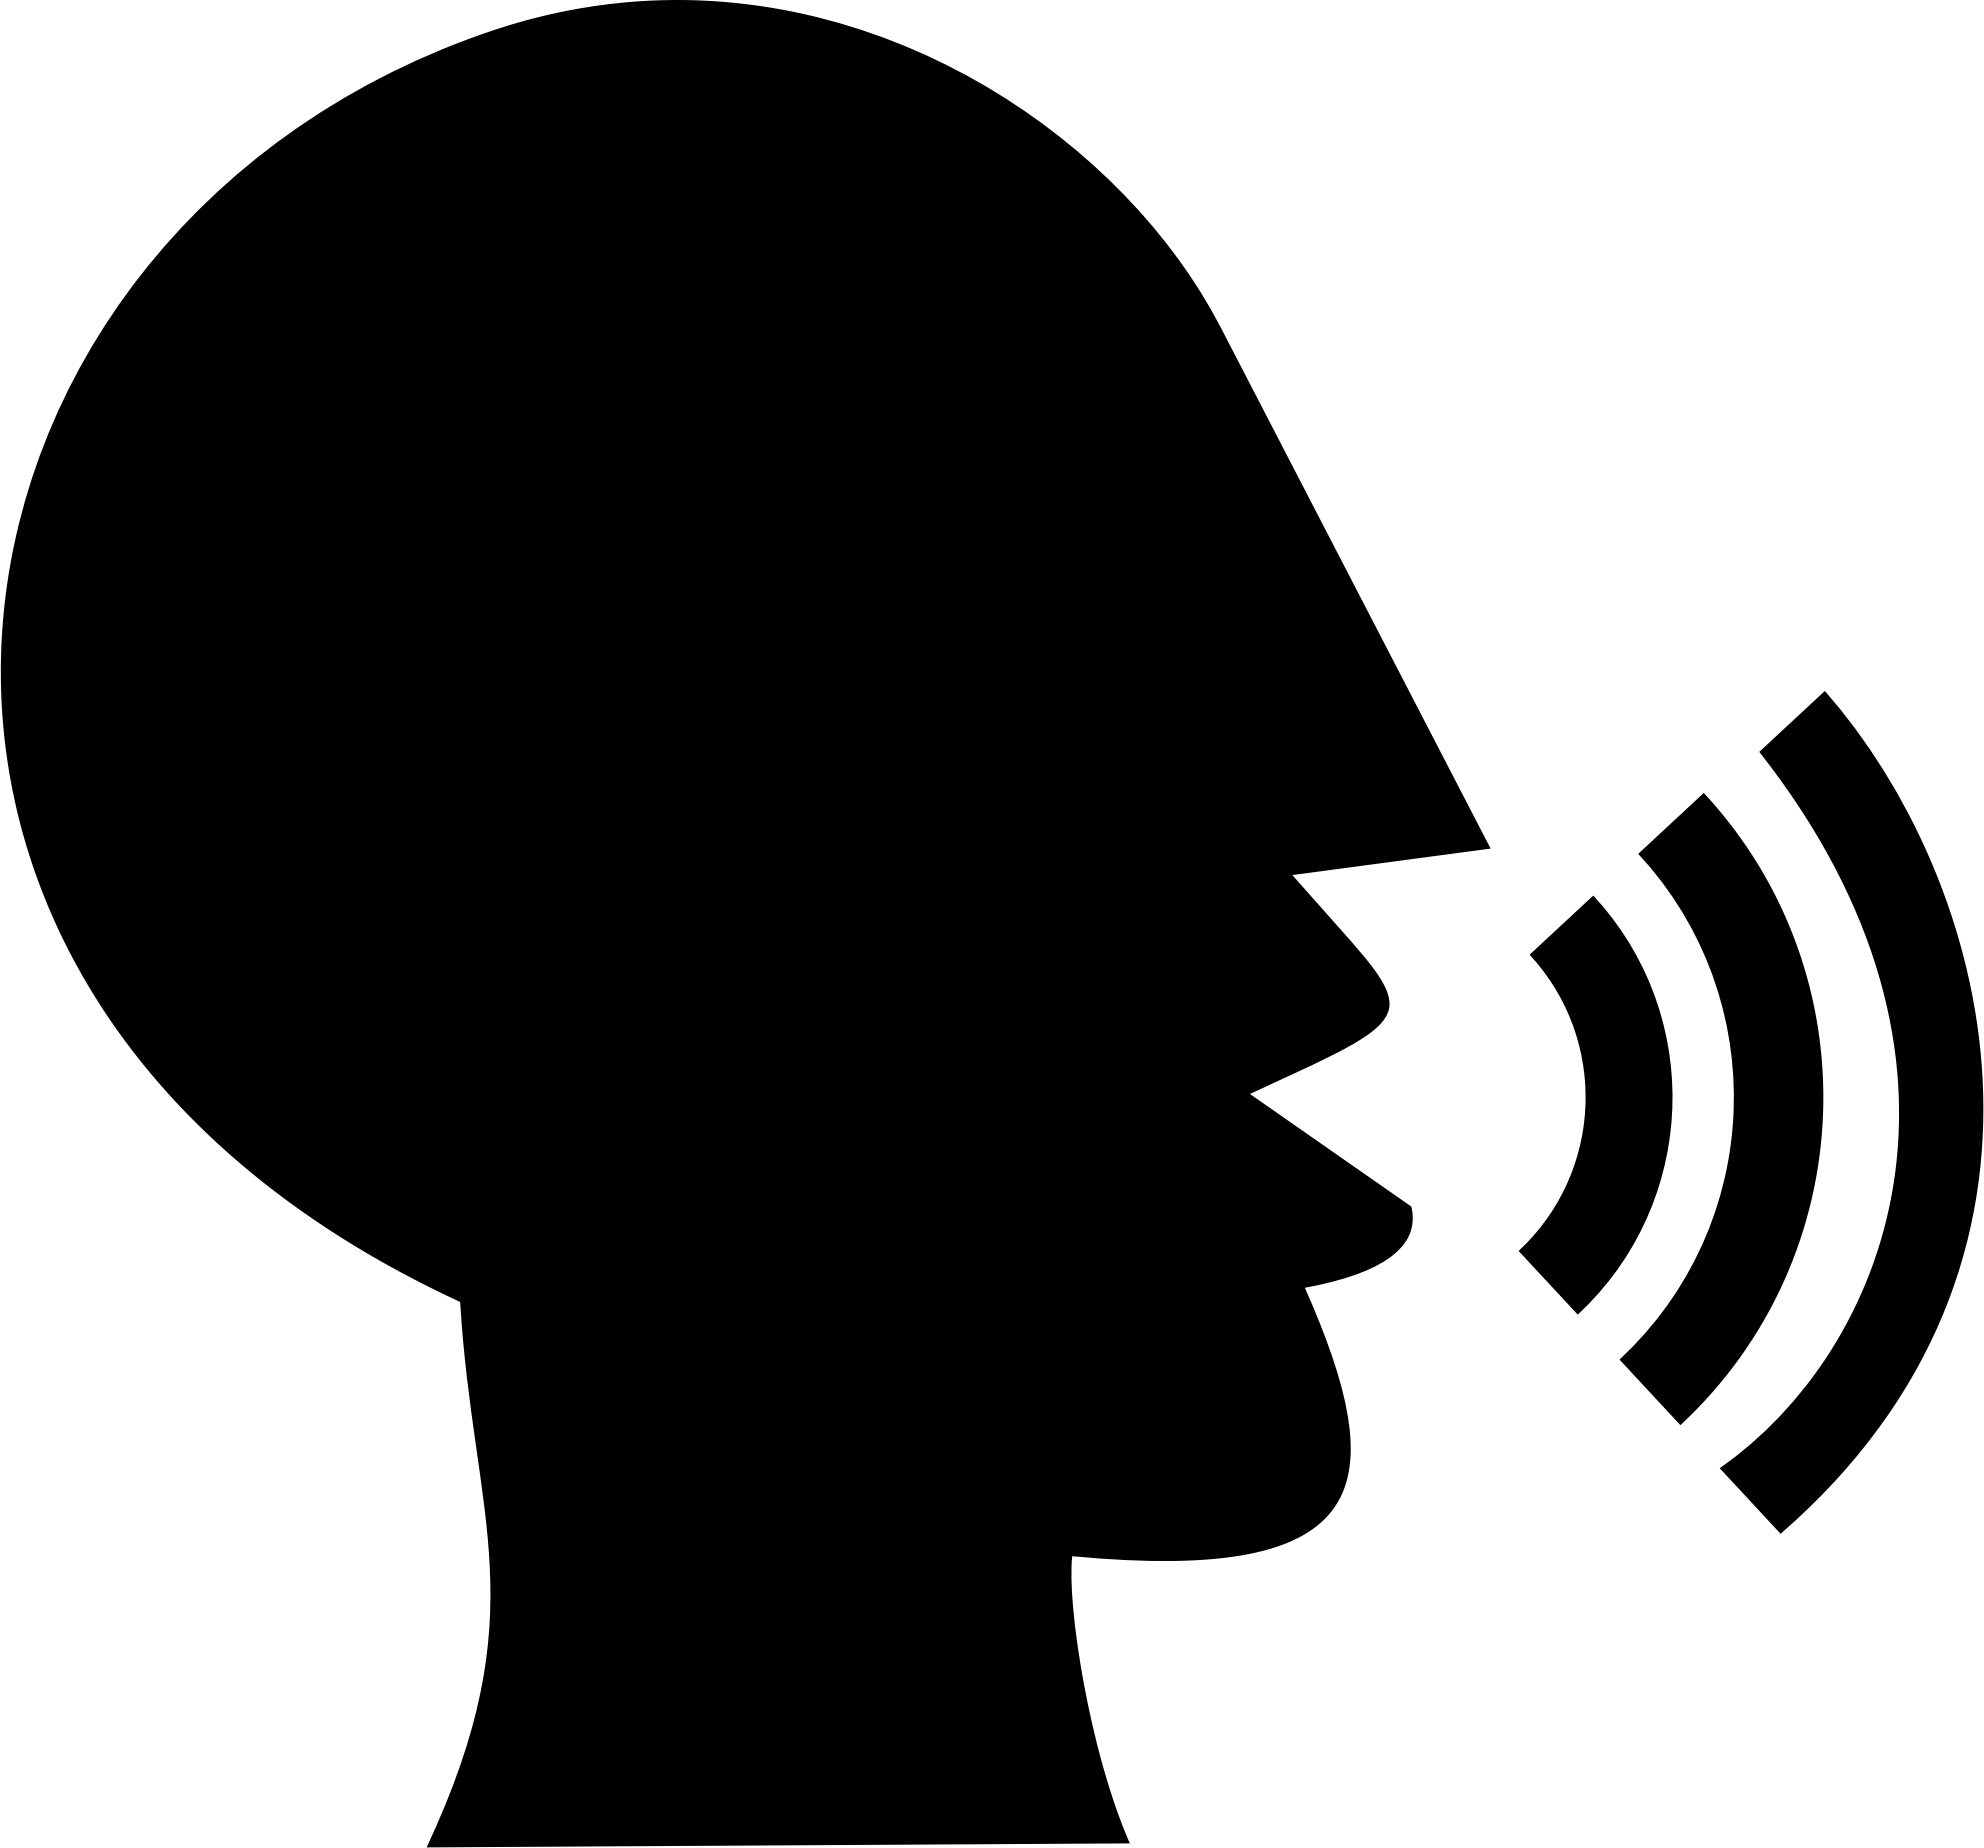 Talking Head Silhouette vector clipart image.